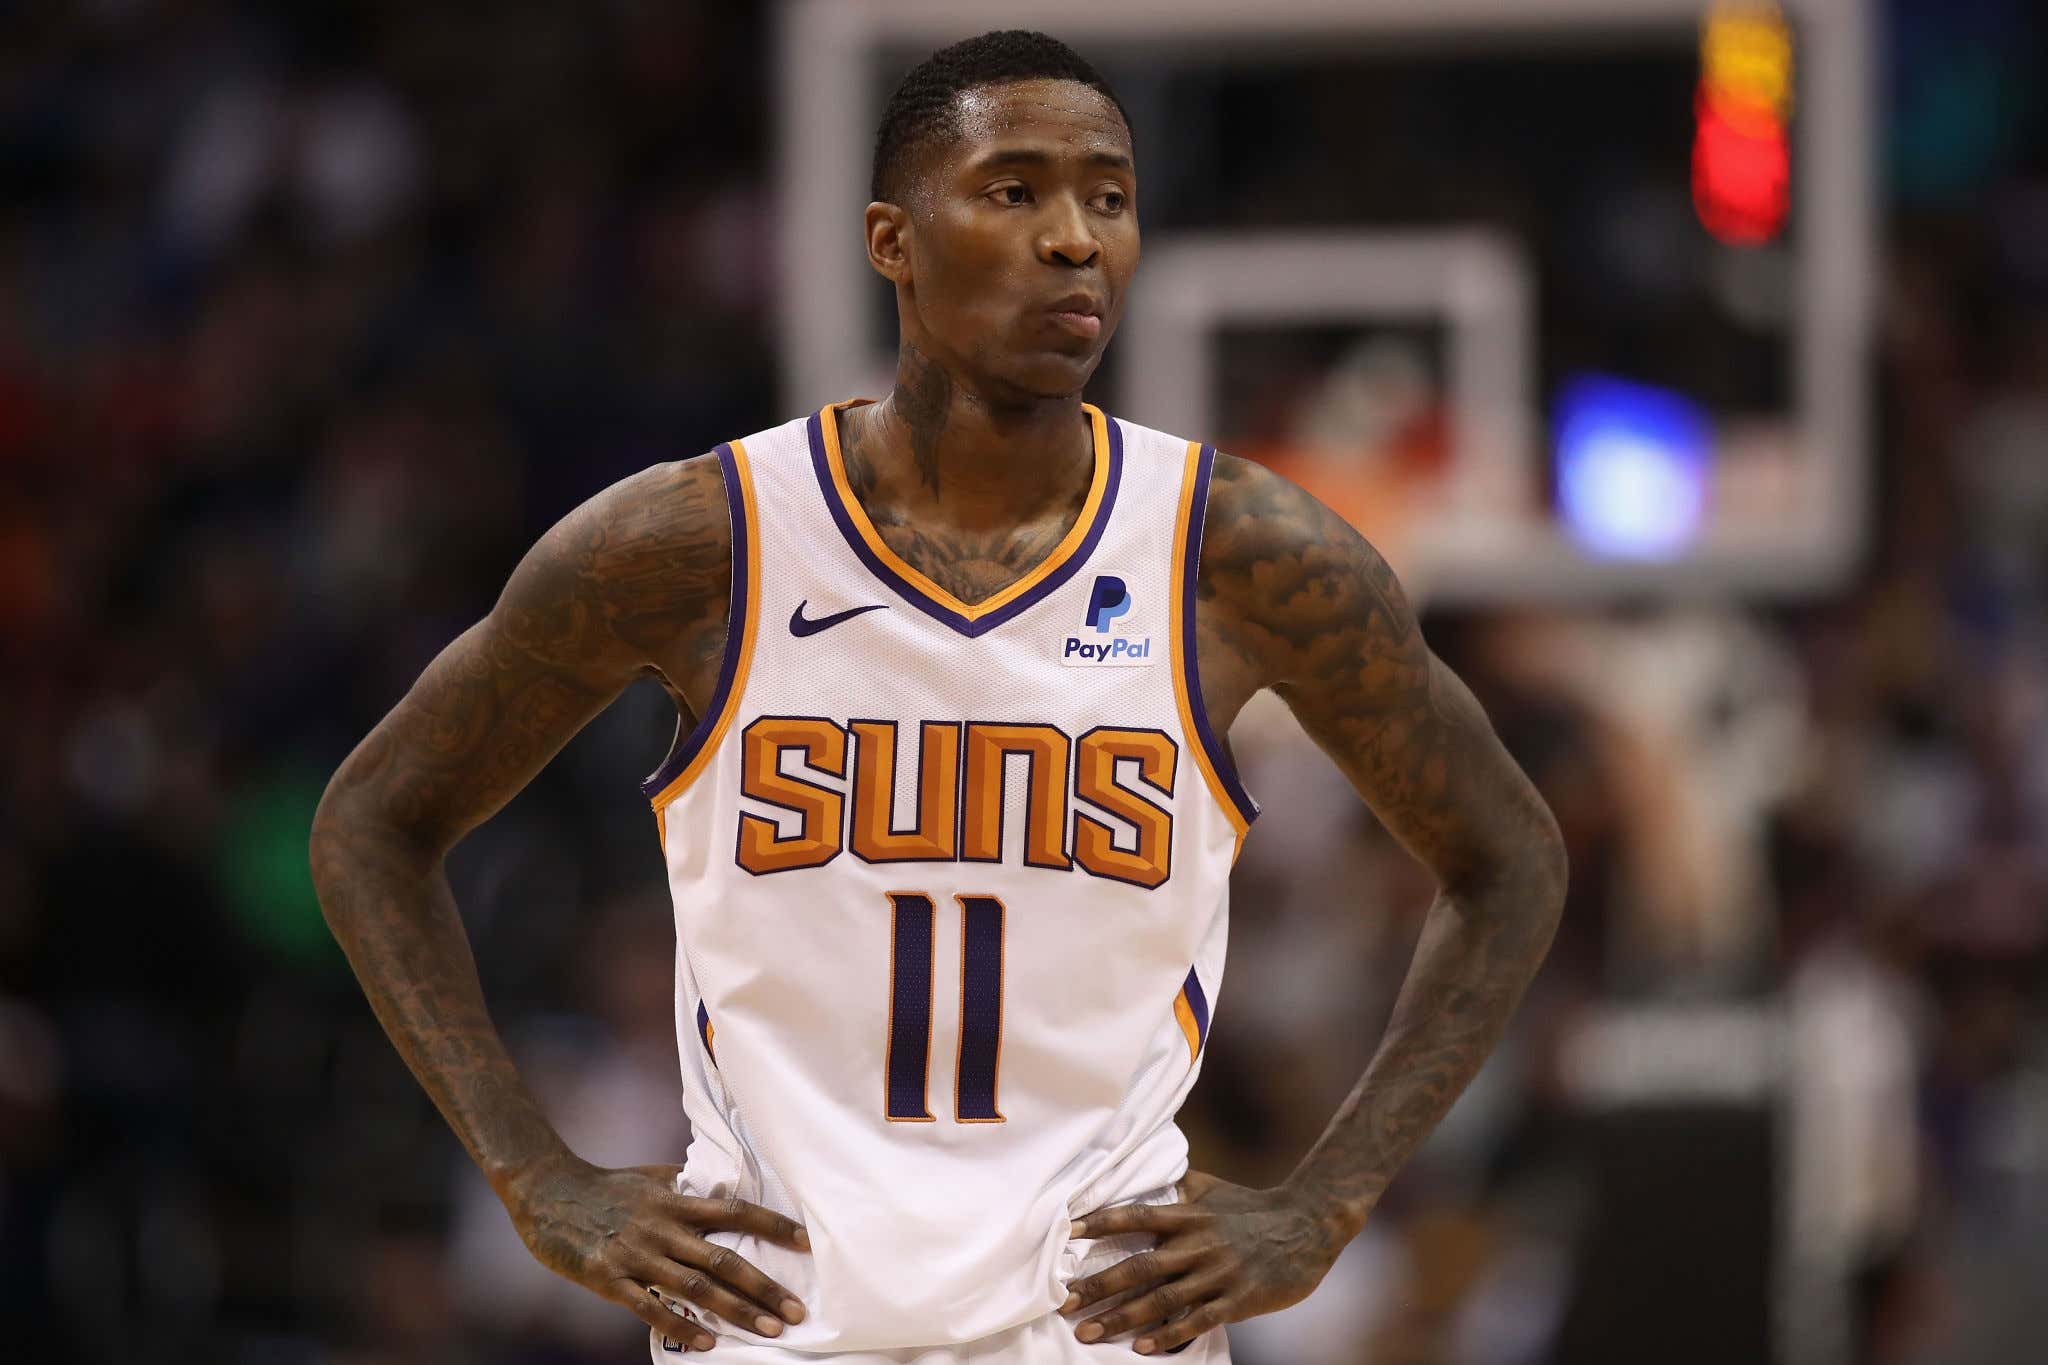 PHOENIX, ARIZONA - DECEMBER 31:  Jamal Crawford #11 of the Phoenix Suns during the second half of the NBA game against the Golden State Warriors at Talking Stick Resort Arena on December 31, 2018 in Phoenix, Arizona. (Photo by Christian Petersen/Getty Images)